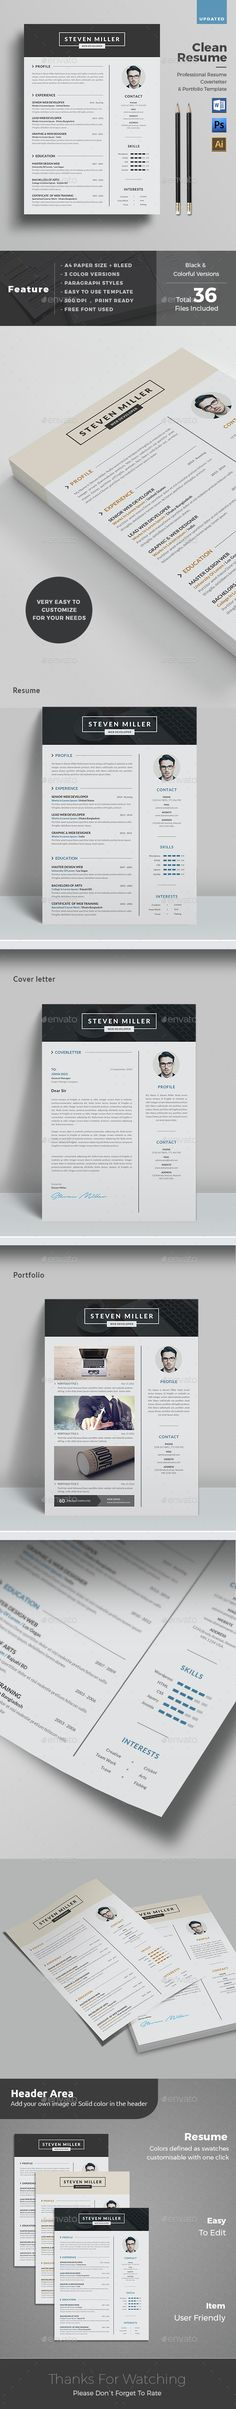 Resume Resumes Stationery Download here https graphicriver